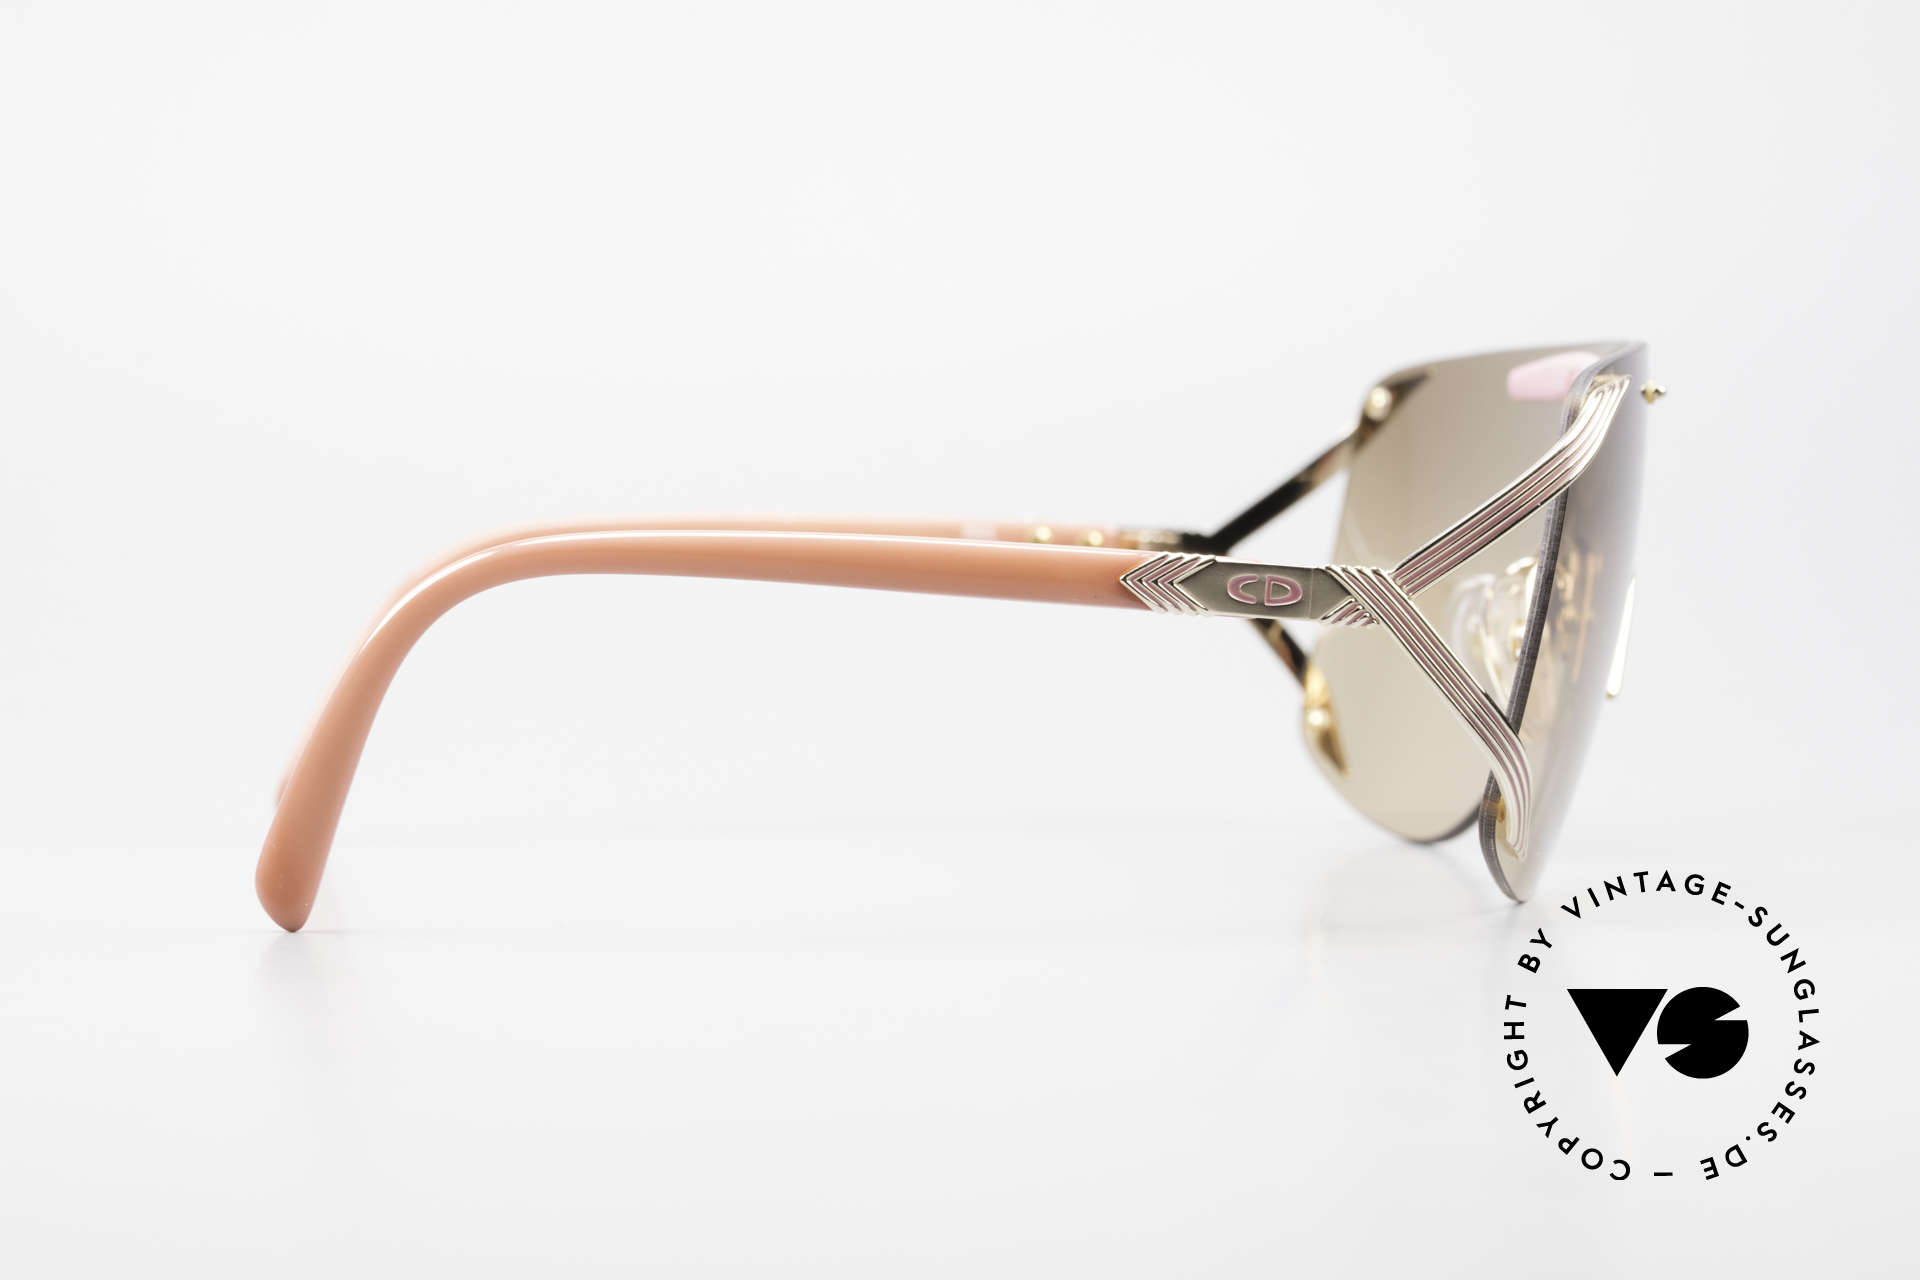 Christian Dior 2434 Light Pink Mirrored Shades 80s, Dior Model 2434 was also worn by famous RIHANNA, Made for Women